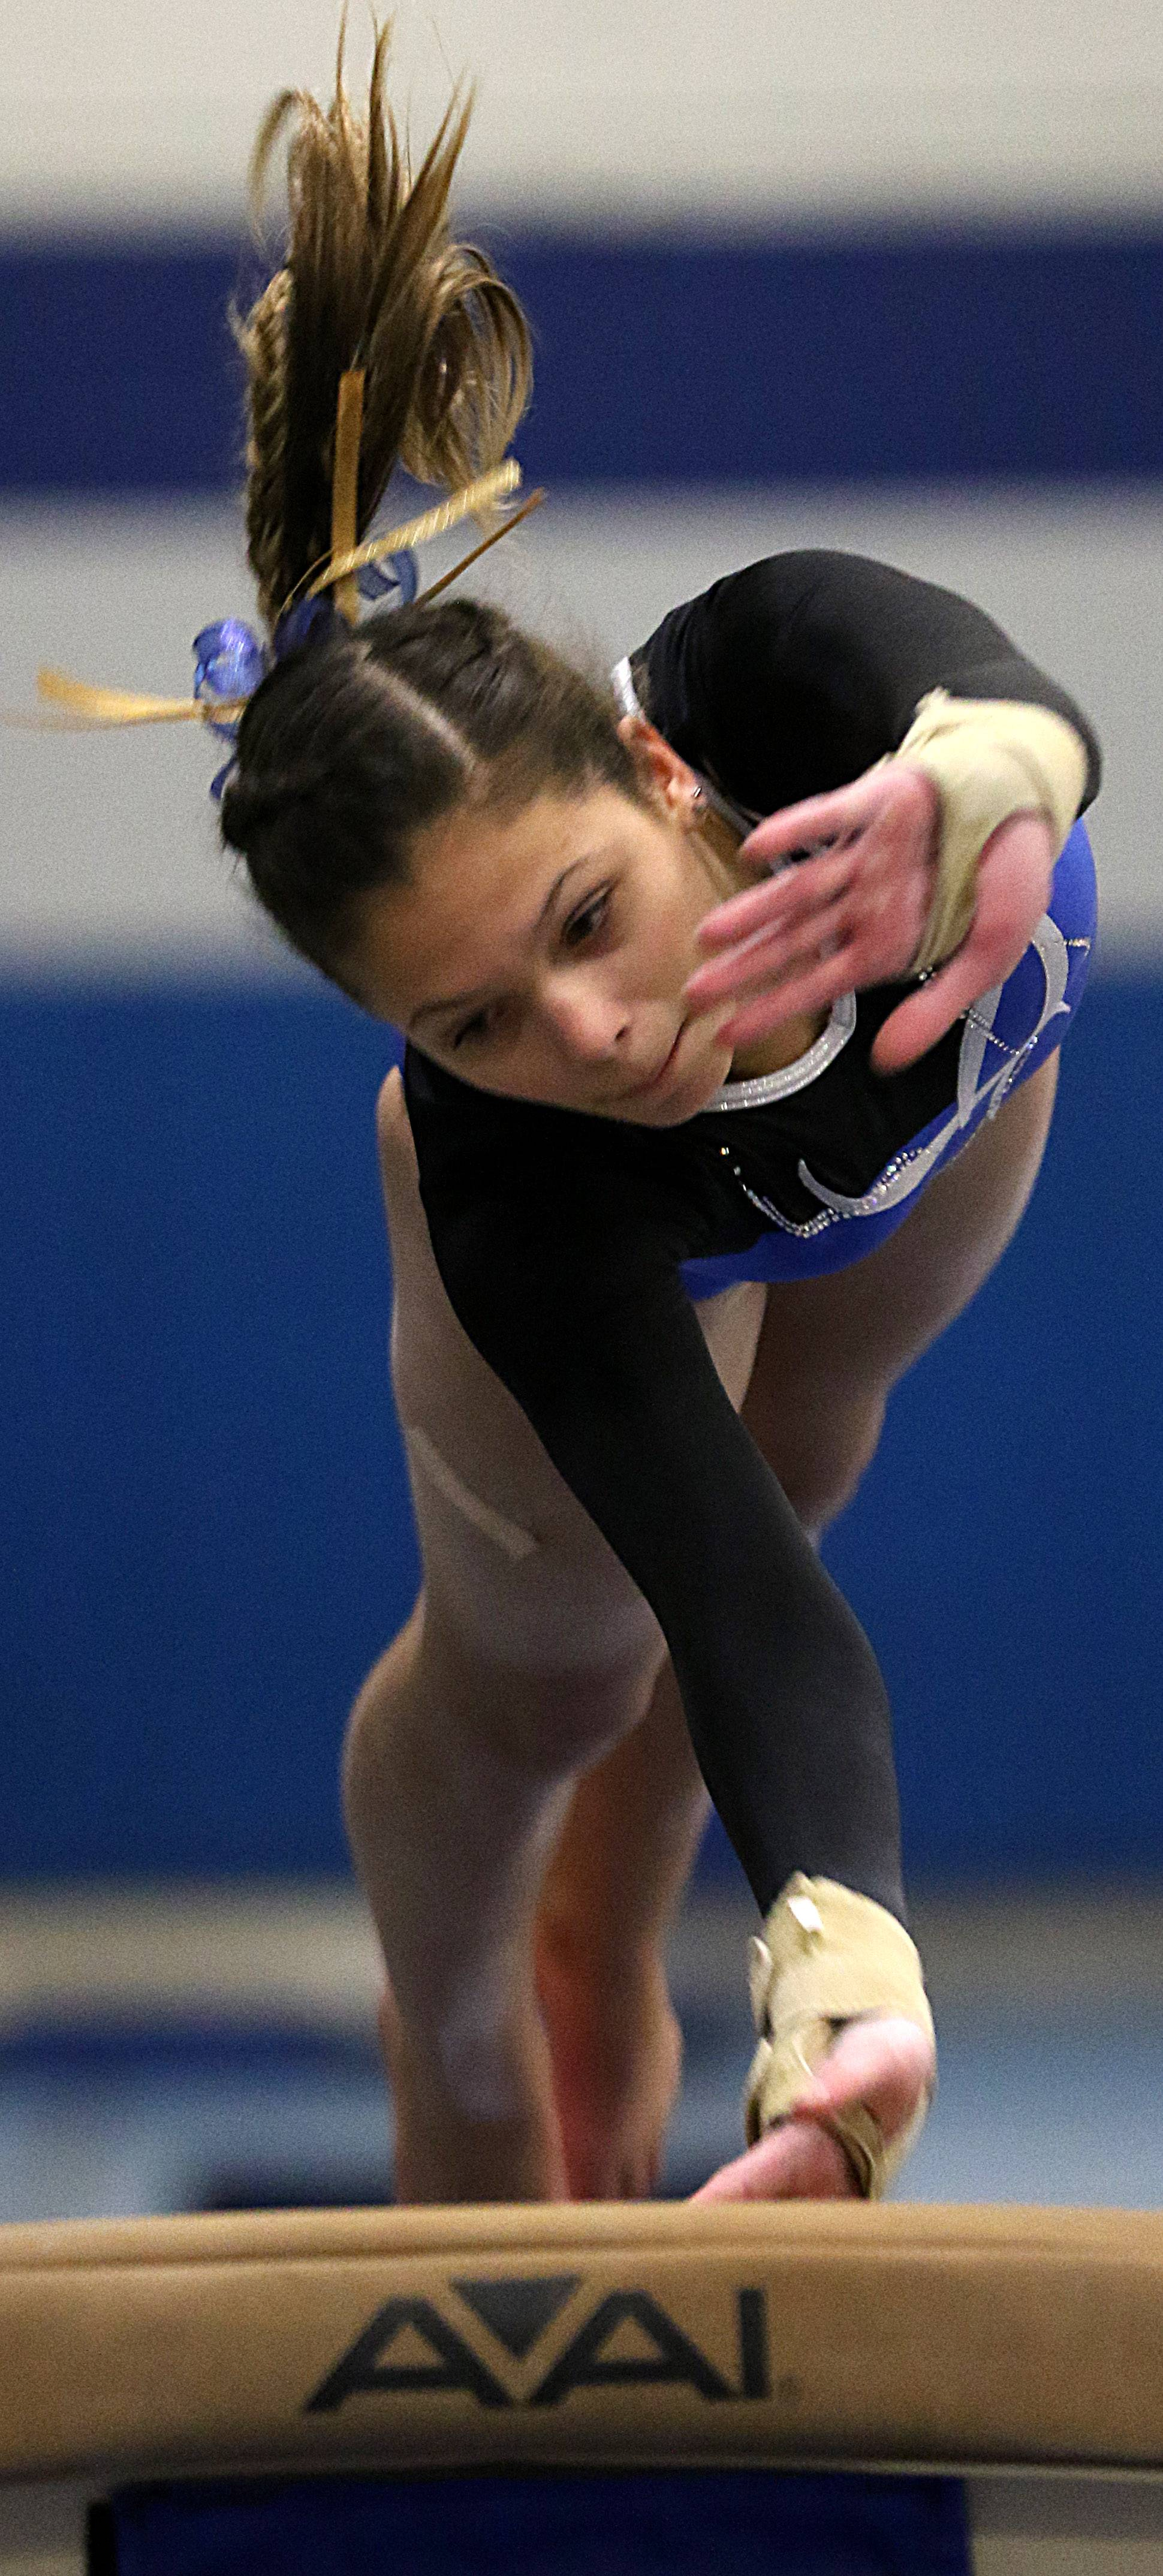 Wheeling's Emily Zajac performs on the vault during regional gymnastics action at Wheeling on Monday evening.